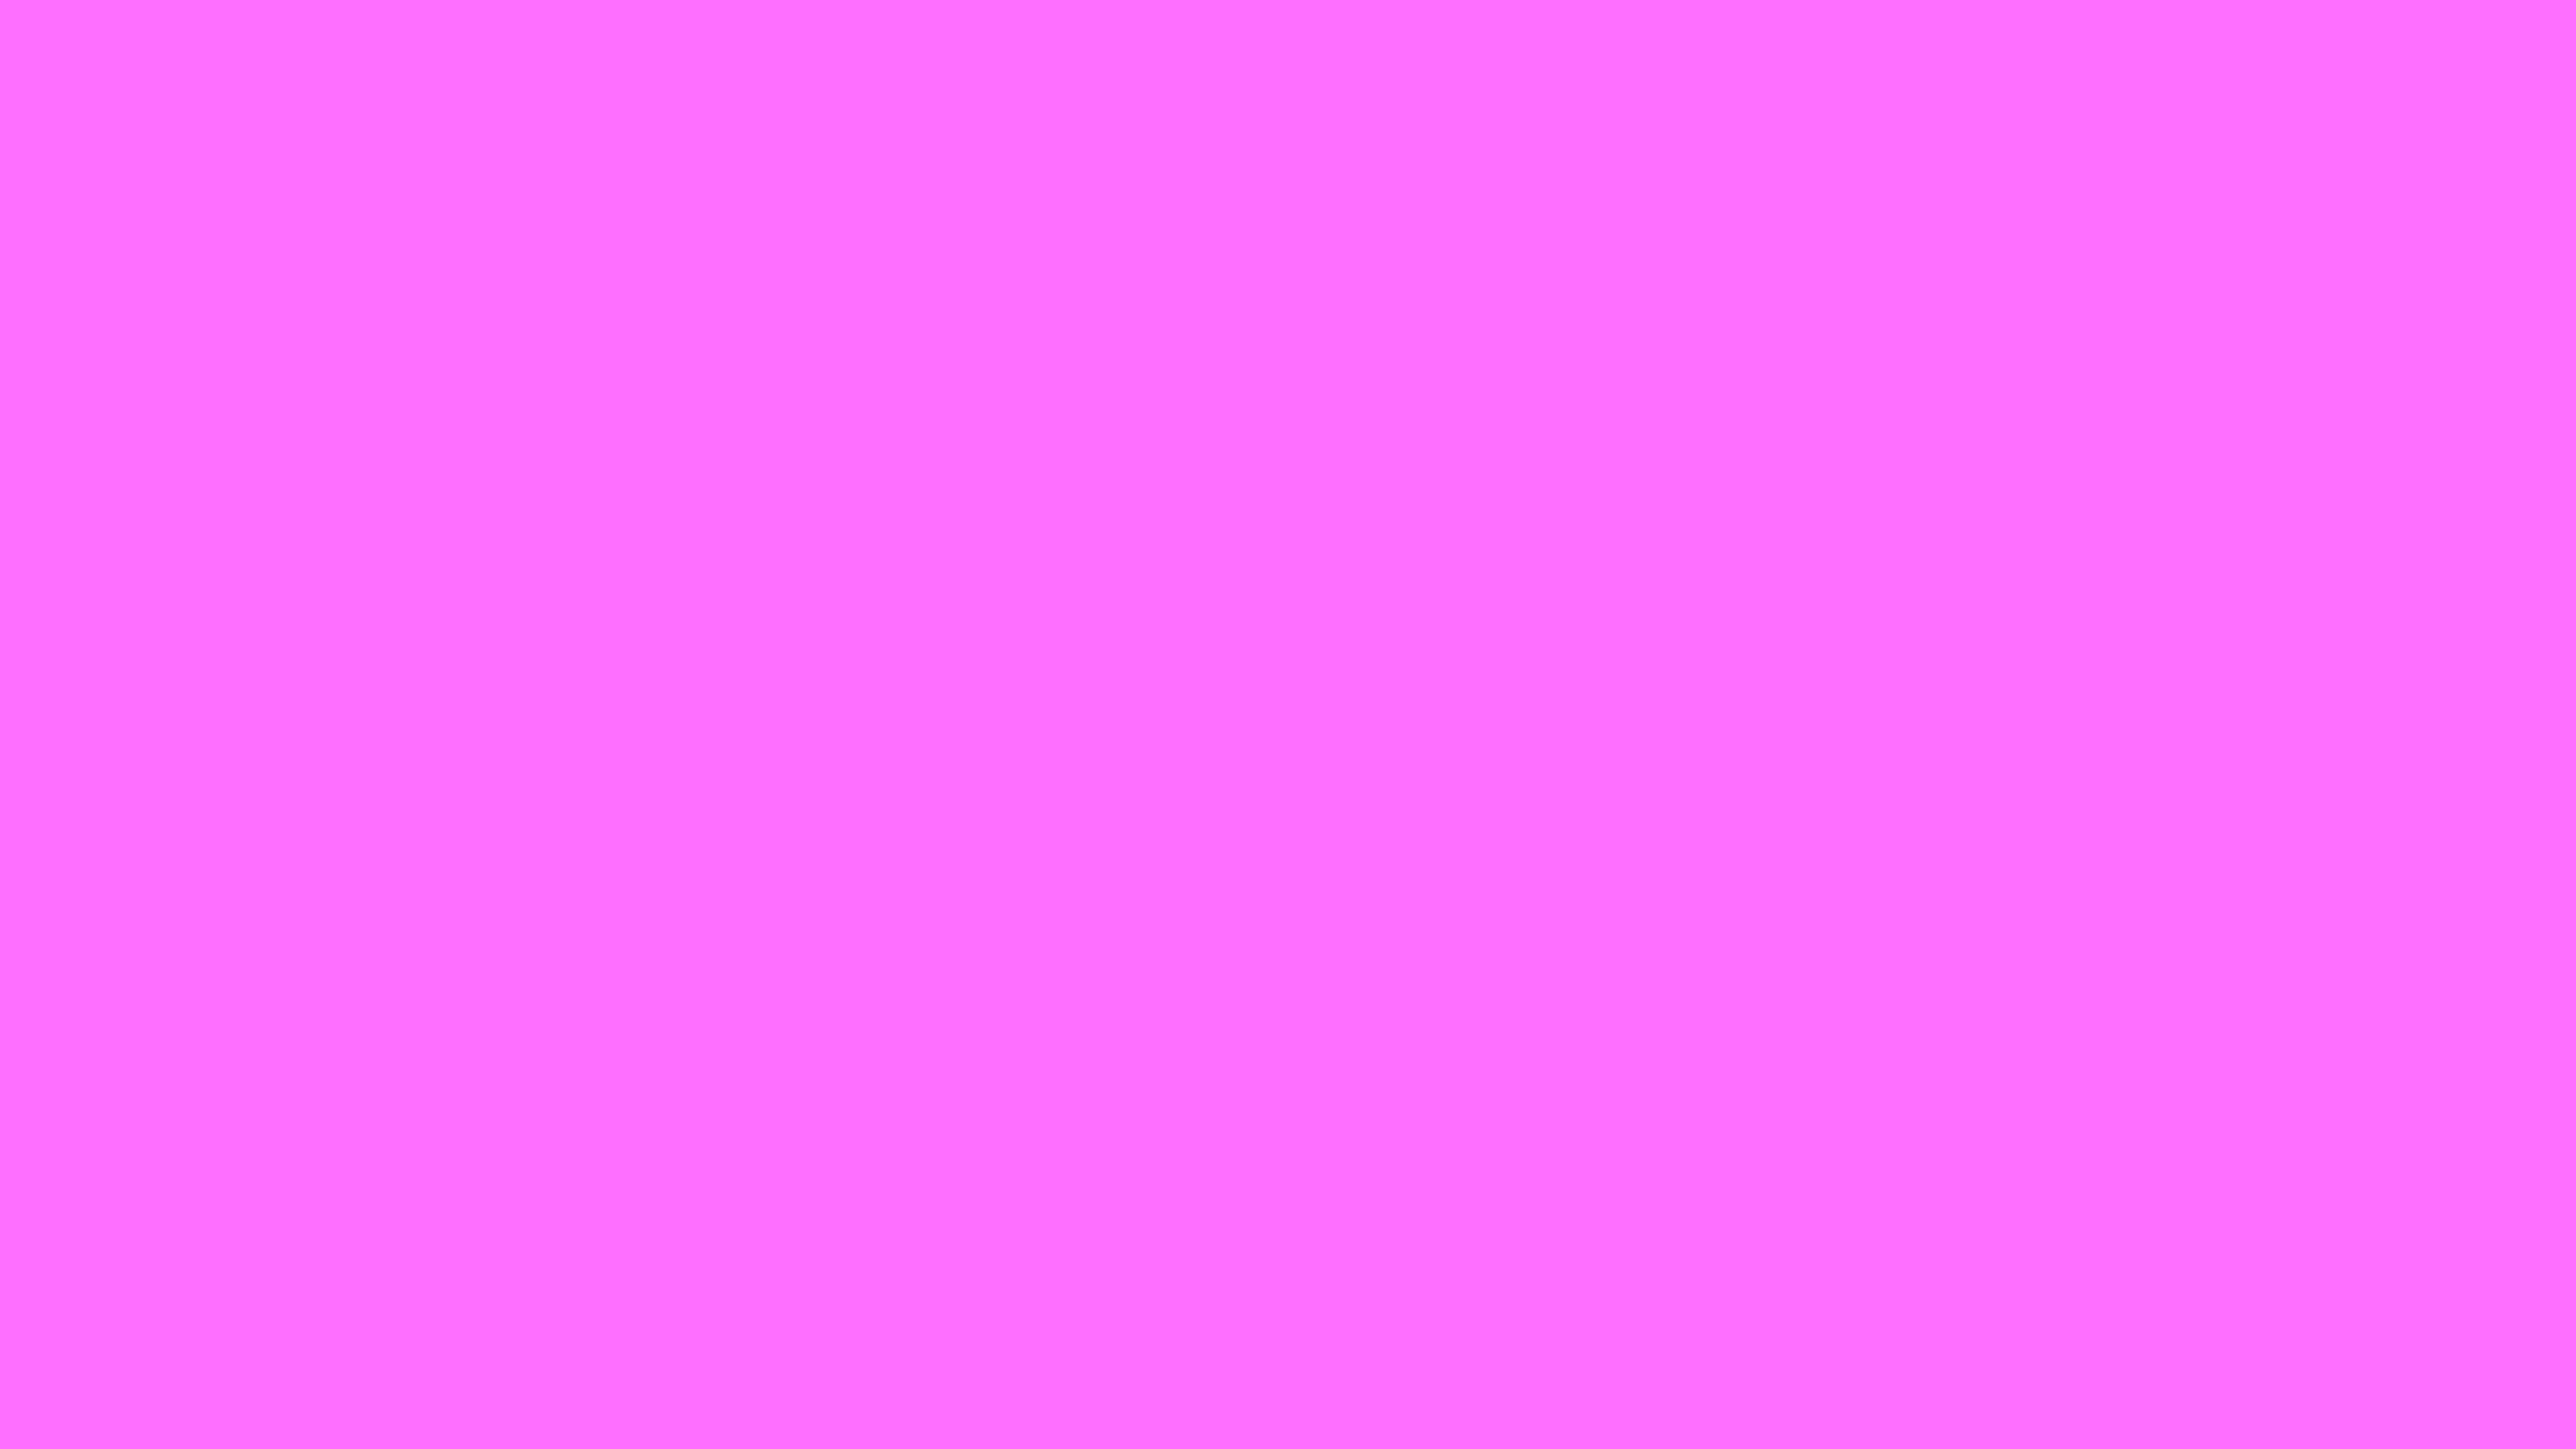 3840x2160 Shocking Pink Crayola Solid Color Background